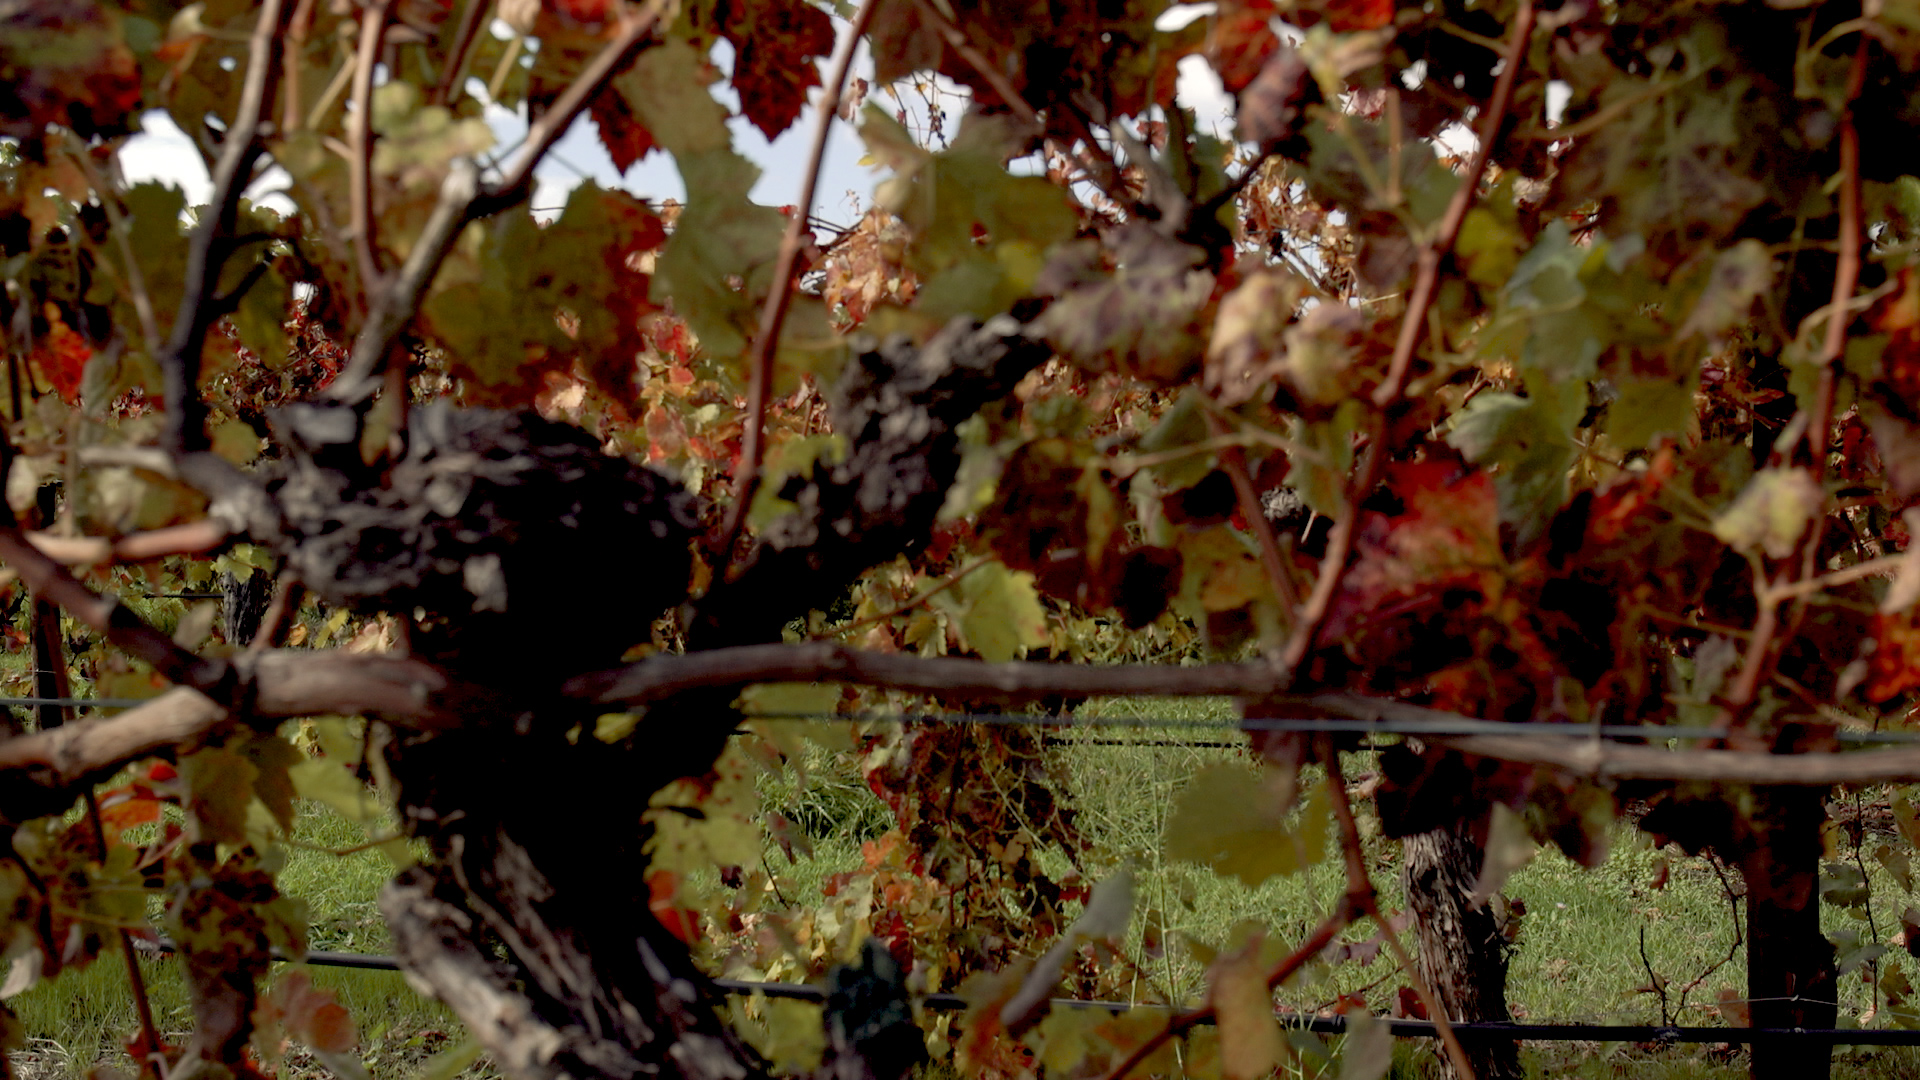 Close up views through vines during autumn at Australian Vineyard